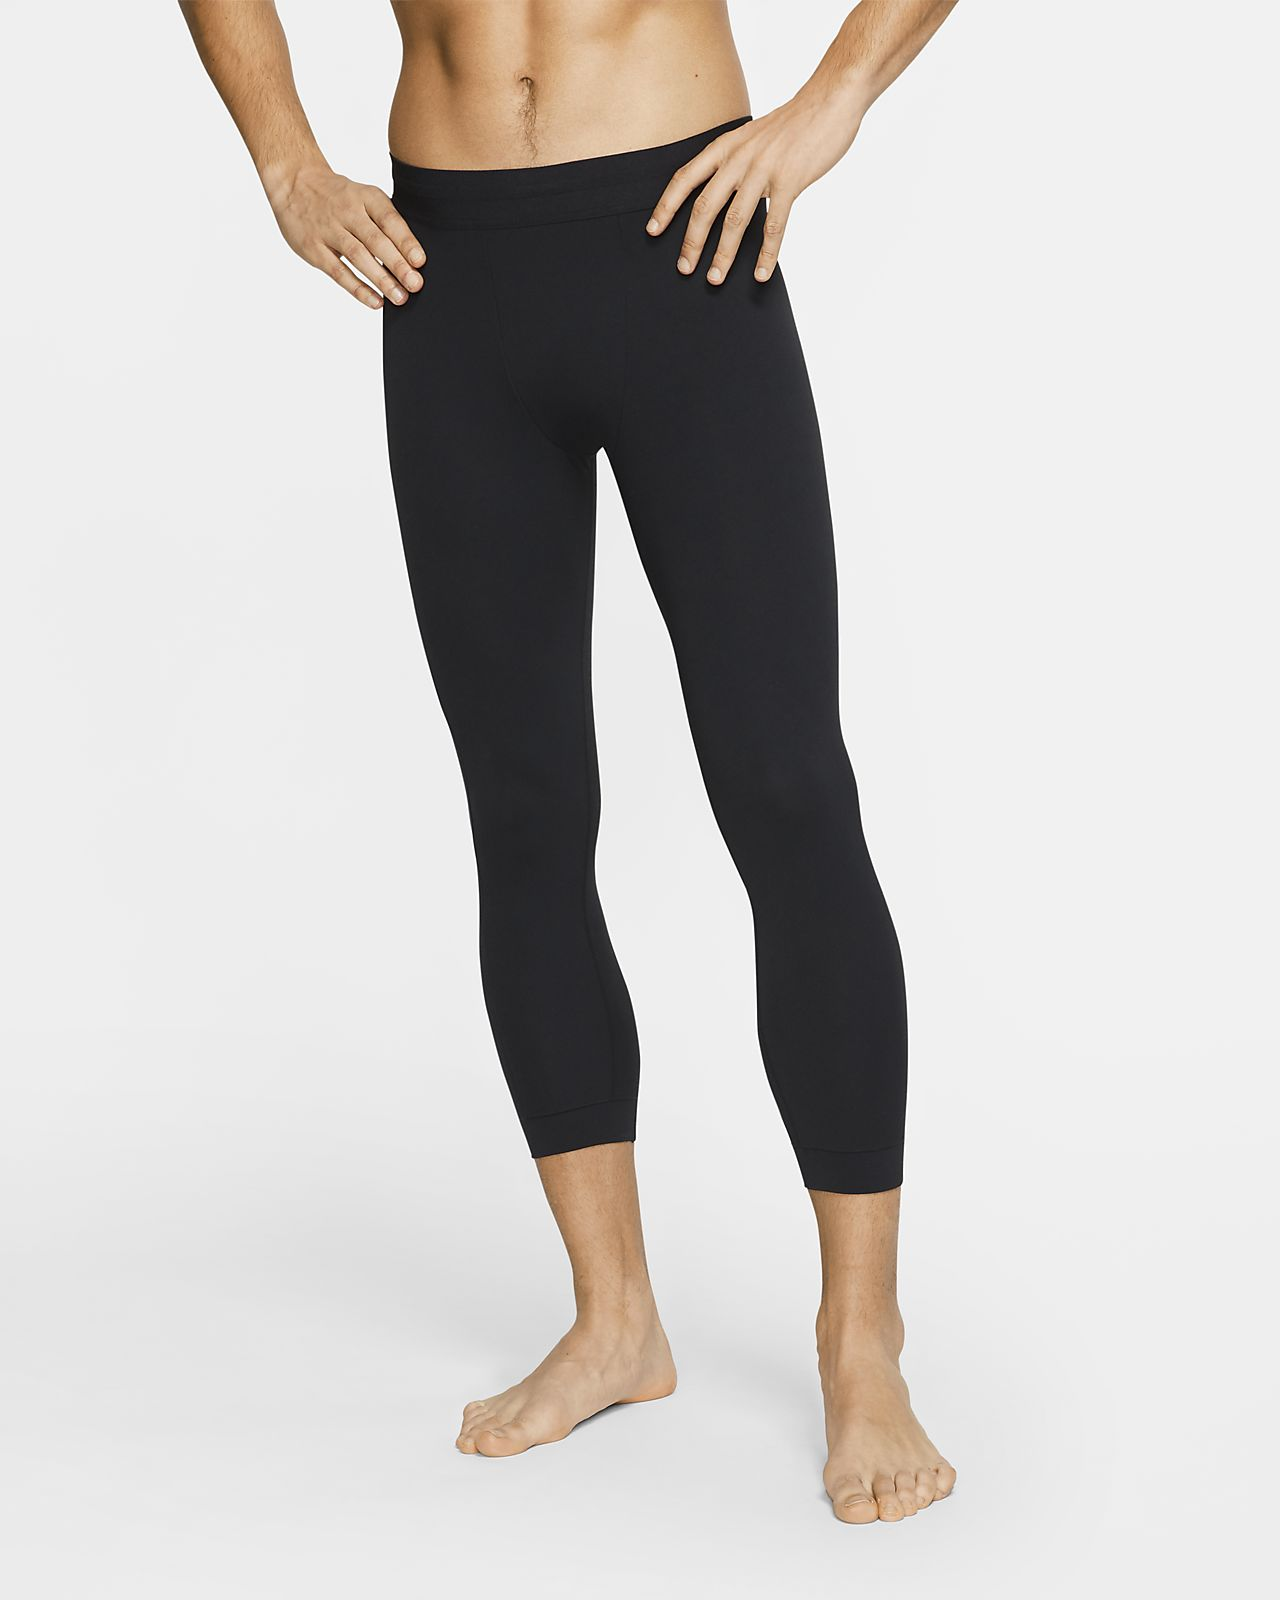 nike 3/4 leggings mens